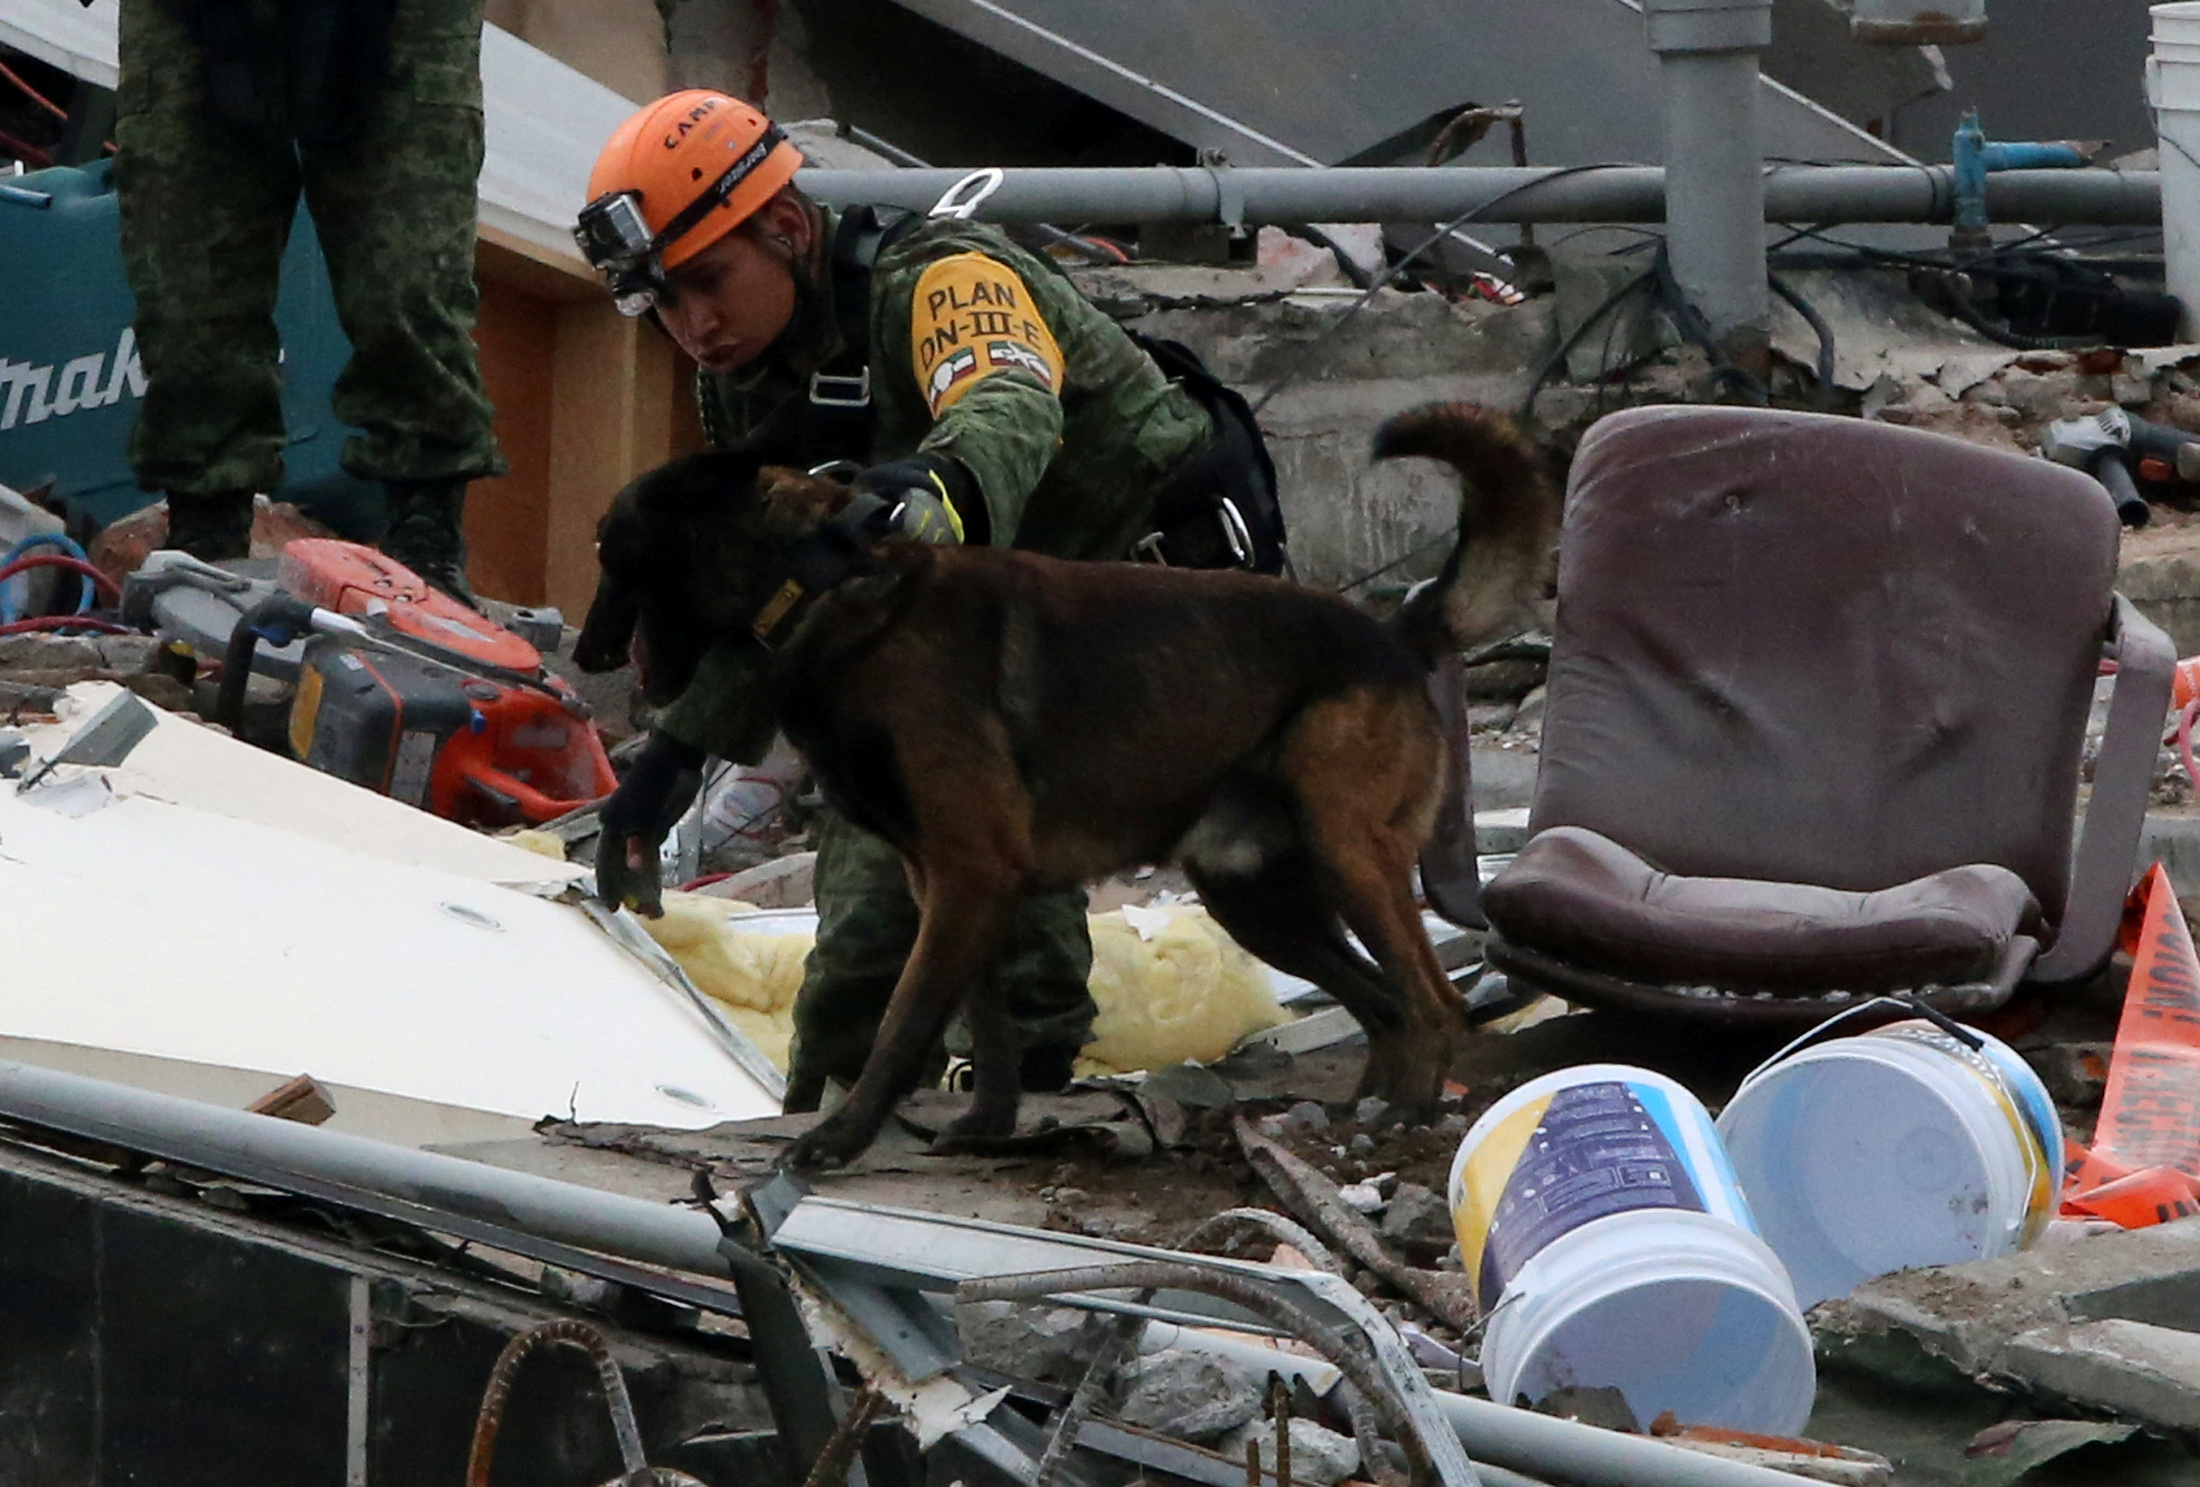 A Mexican soldier and his dog search for survivors in the rubble of a collapsed building after an earthquake in Mexico City, Mexico September 23, 2017. REUTERS/Henry Romero